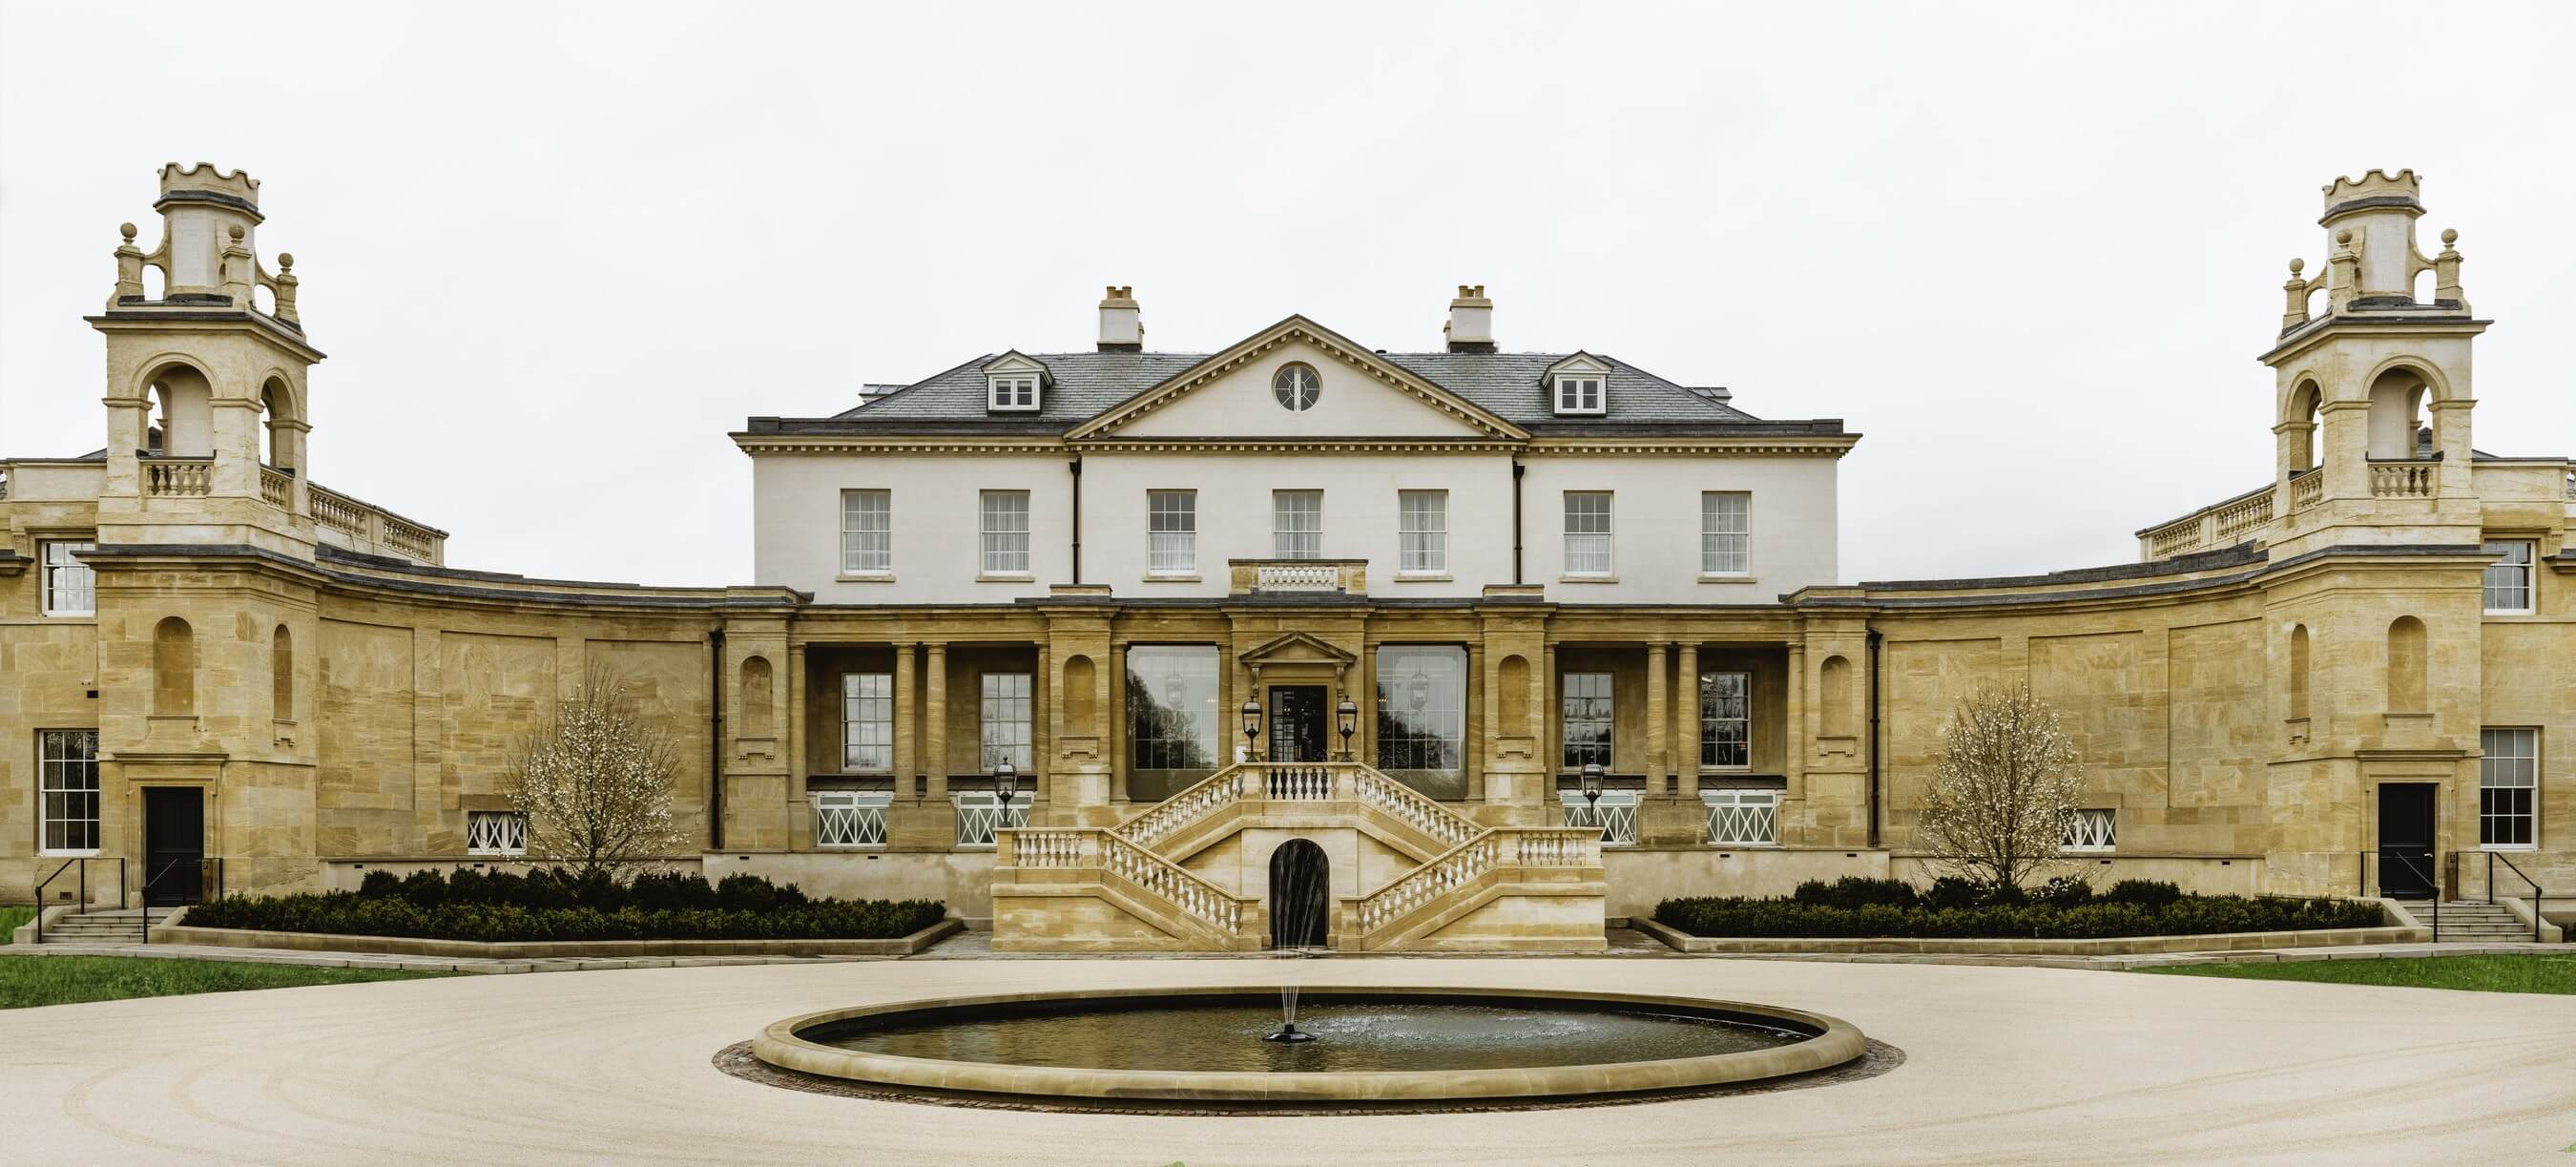 The Luxury Collection opens its first hotel in the English countryside